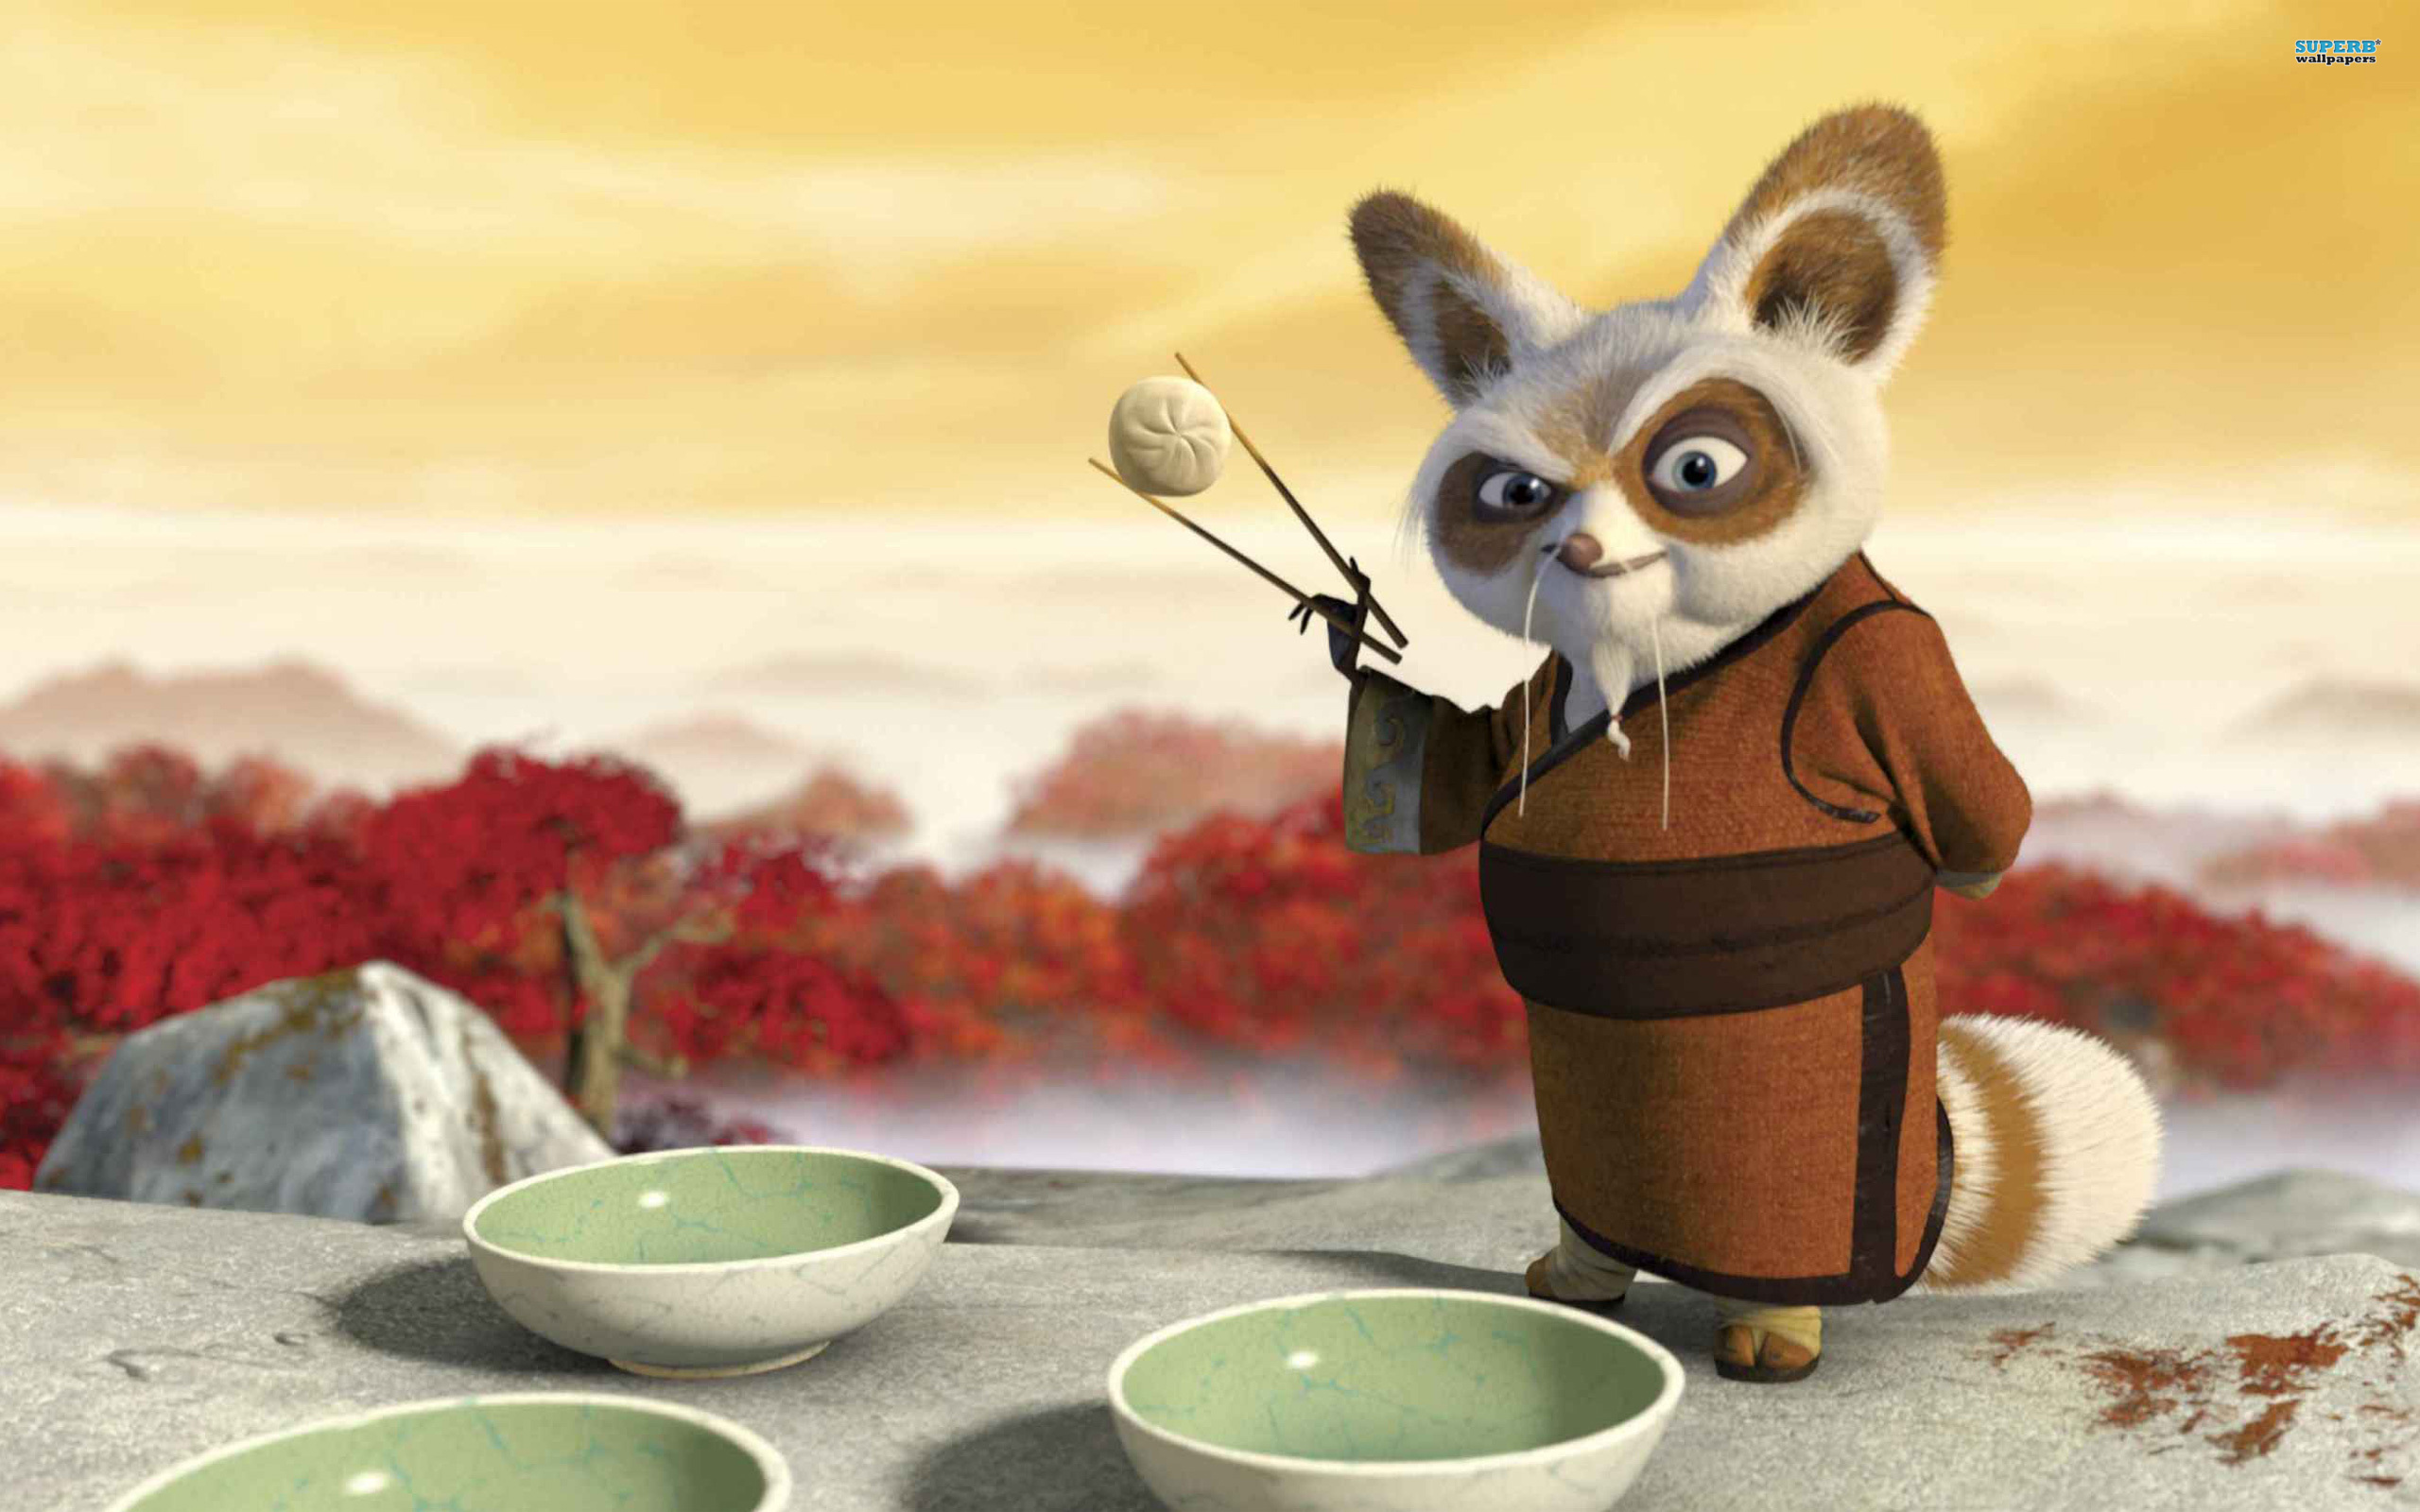 Kung fu panda hd wallpaper background image 2560x1600 - Kung fu panda shifu ...